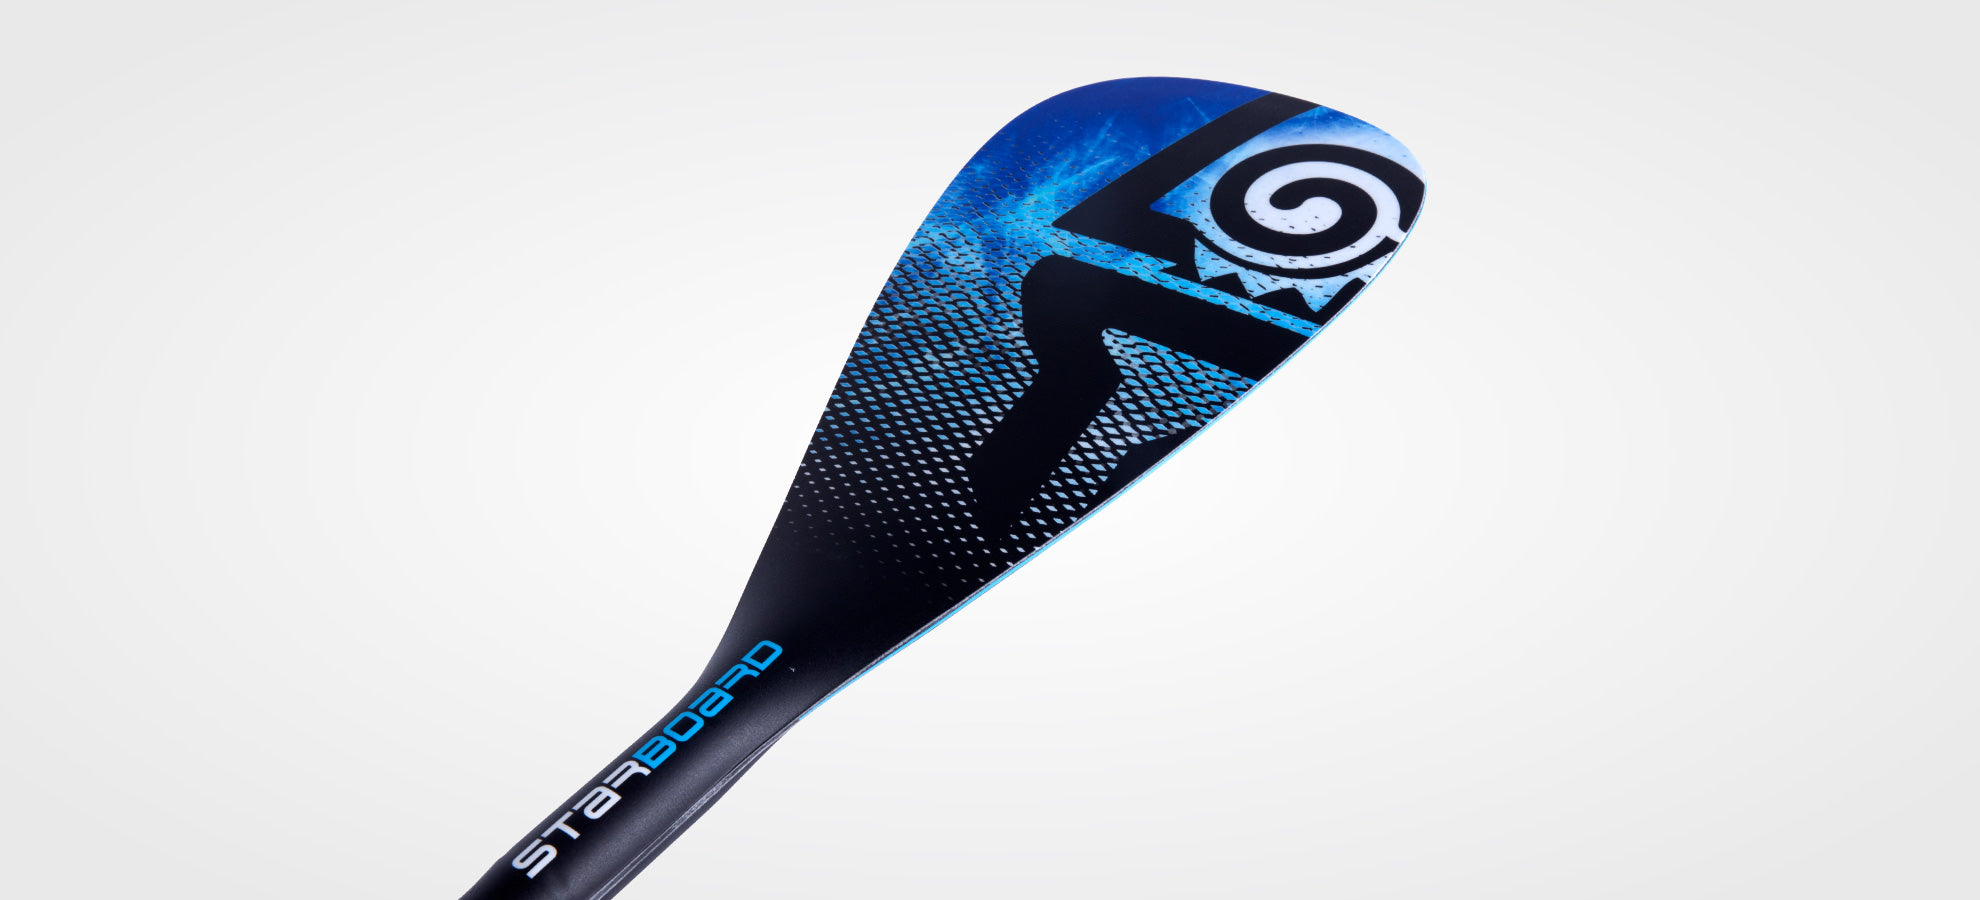 STARBOARD SUP ENDURO 2.0 TII TECH BLUE CARBON 3 PIECE ADJUSTABLE